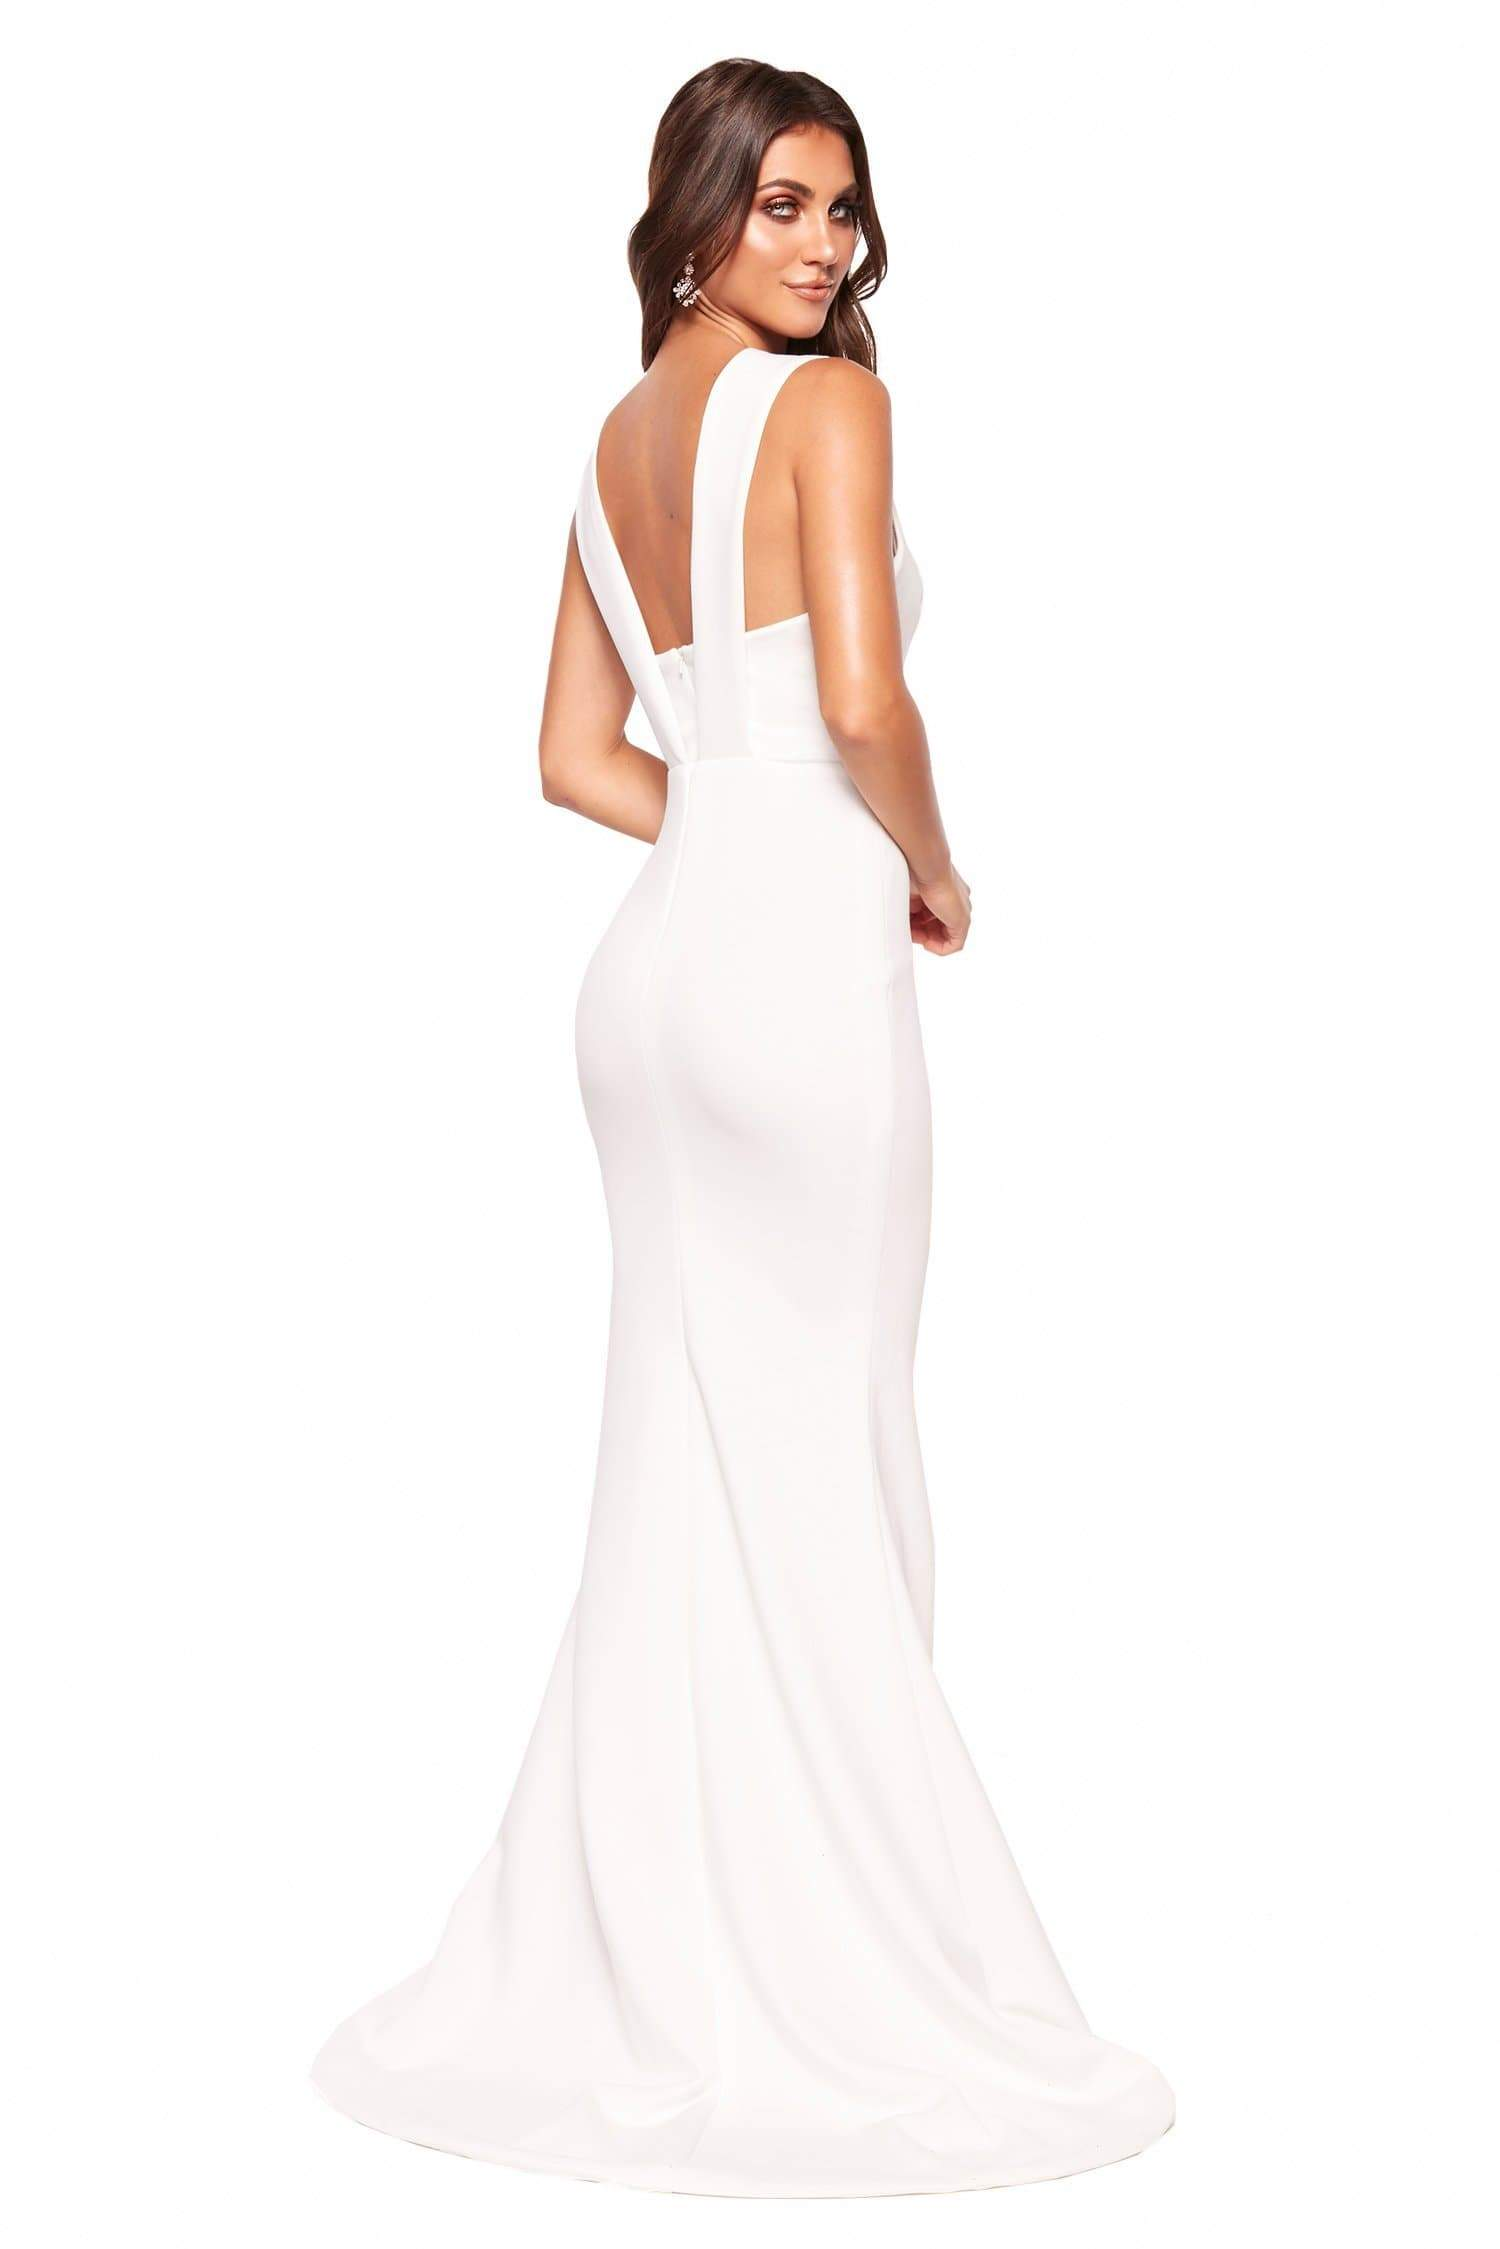 A&N Luxe Scarlett - White Ponti Gown with Plunge Neck & Back Detail